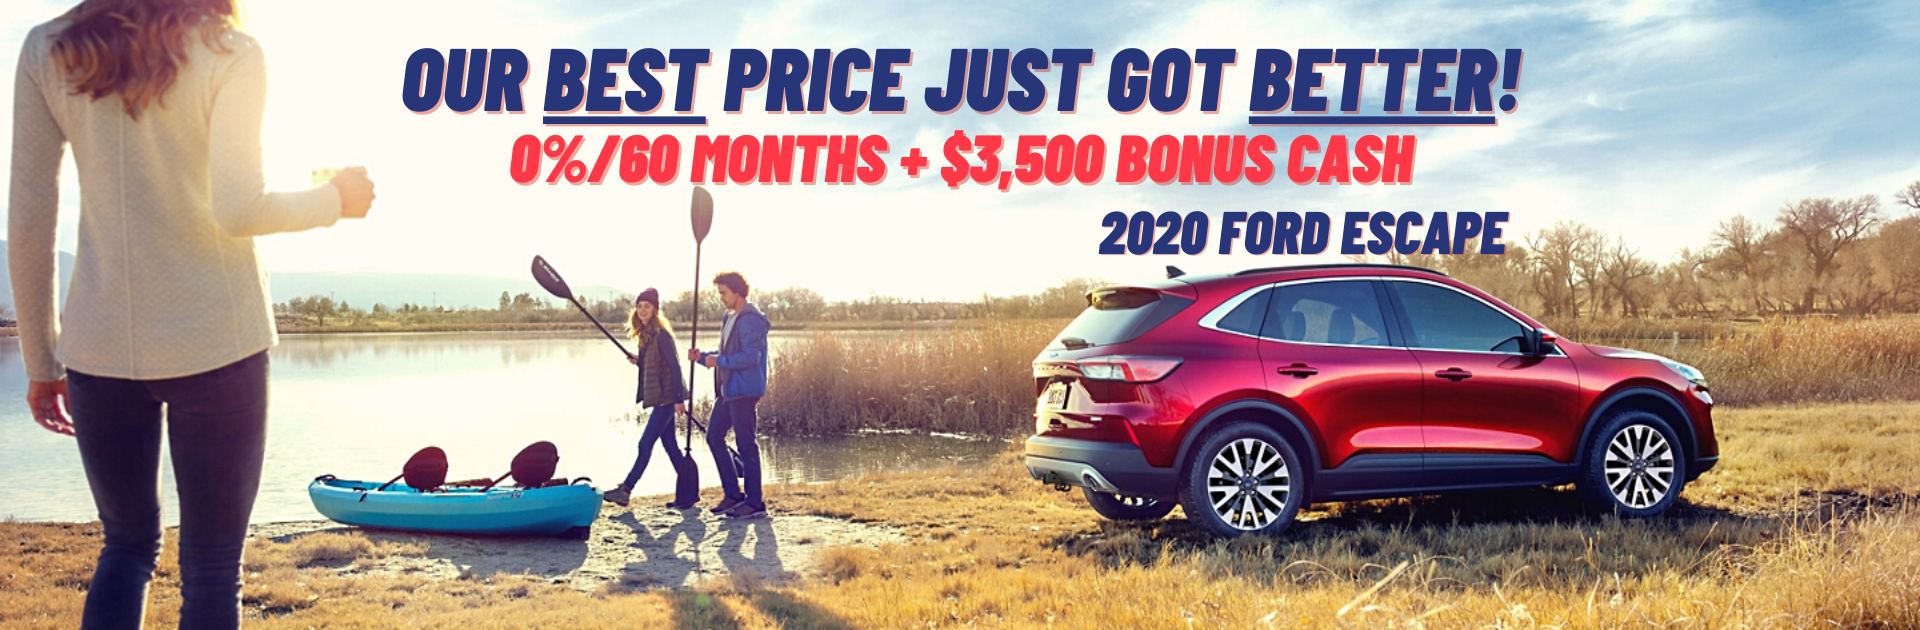 2020 Ford Escape Landing Page1